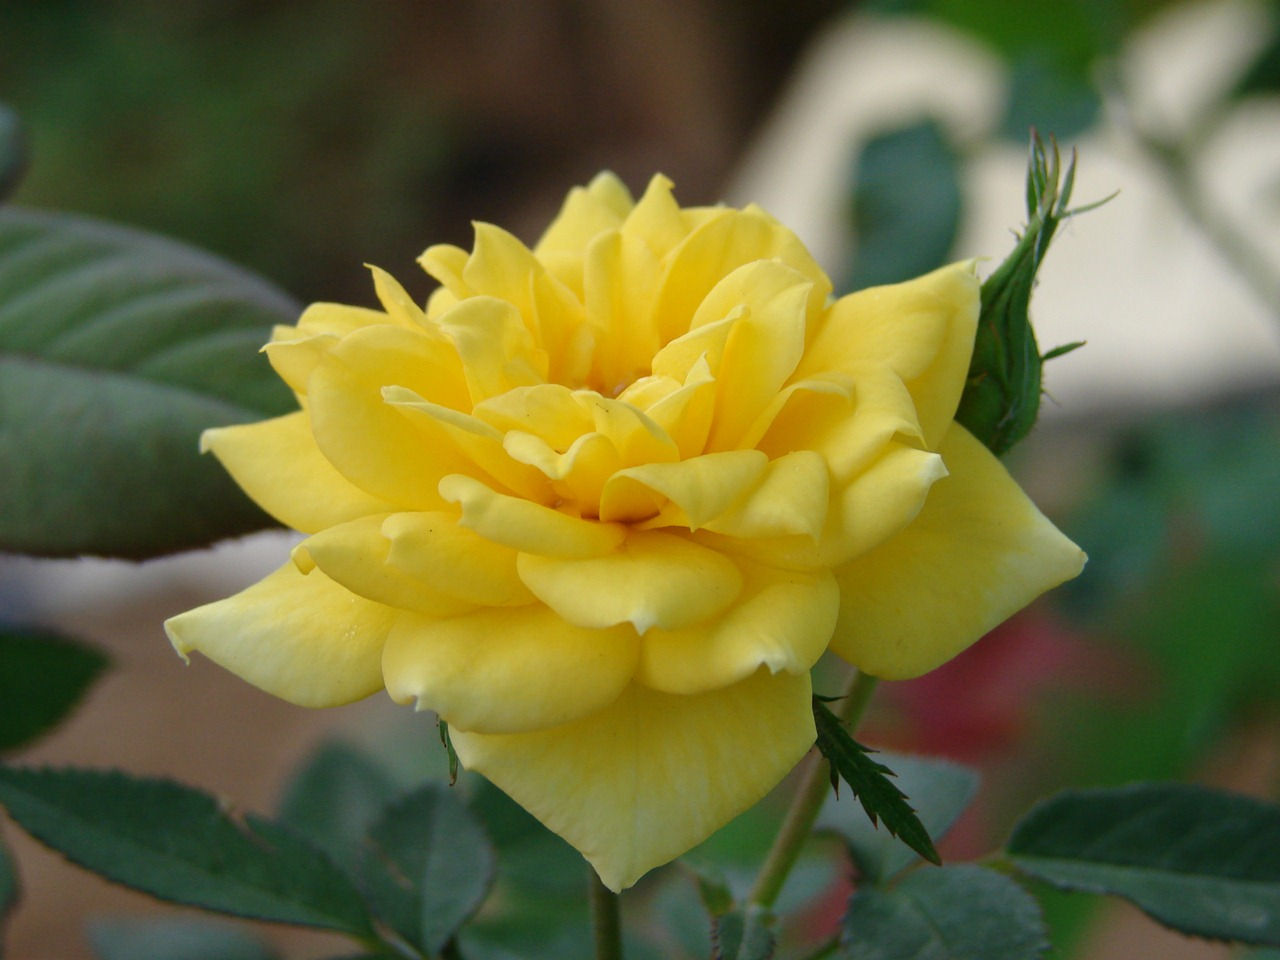 Free Hd Background Images Single Yellow Rose With Bud